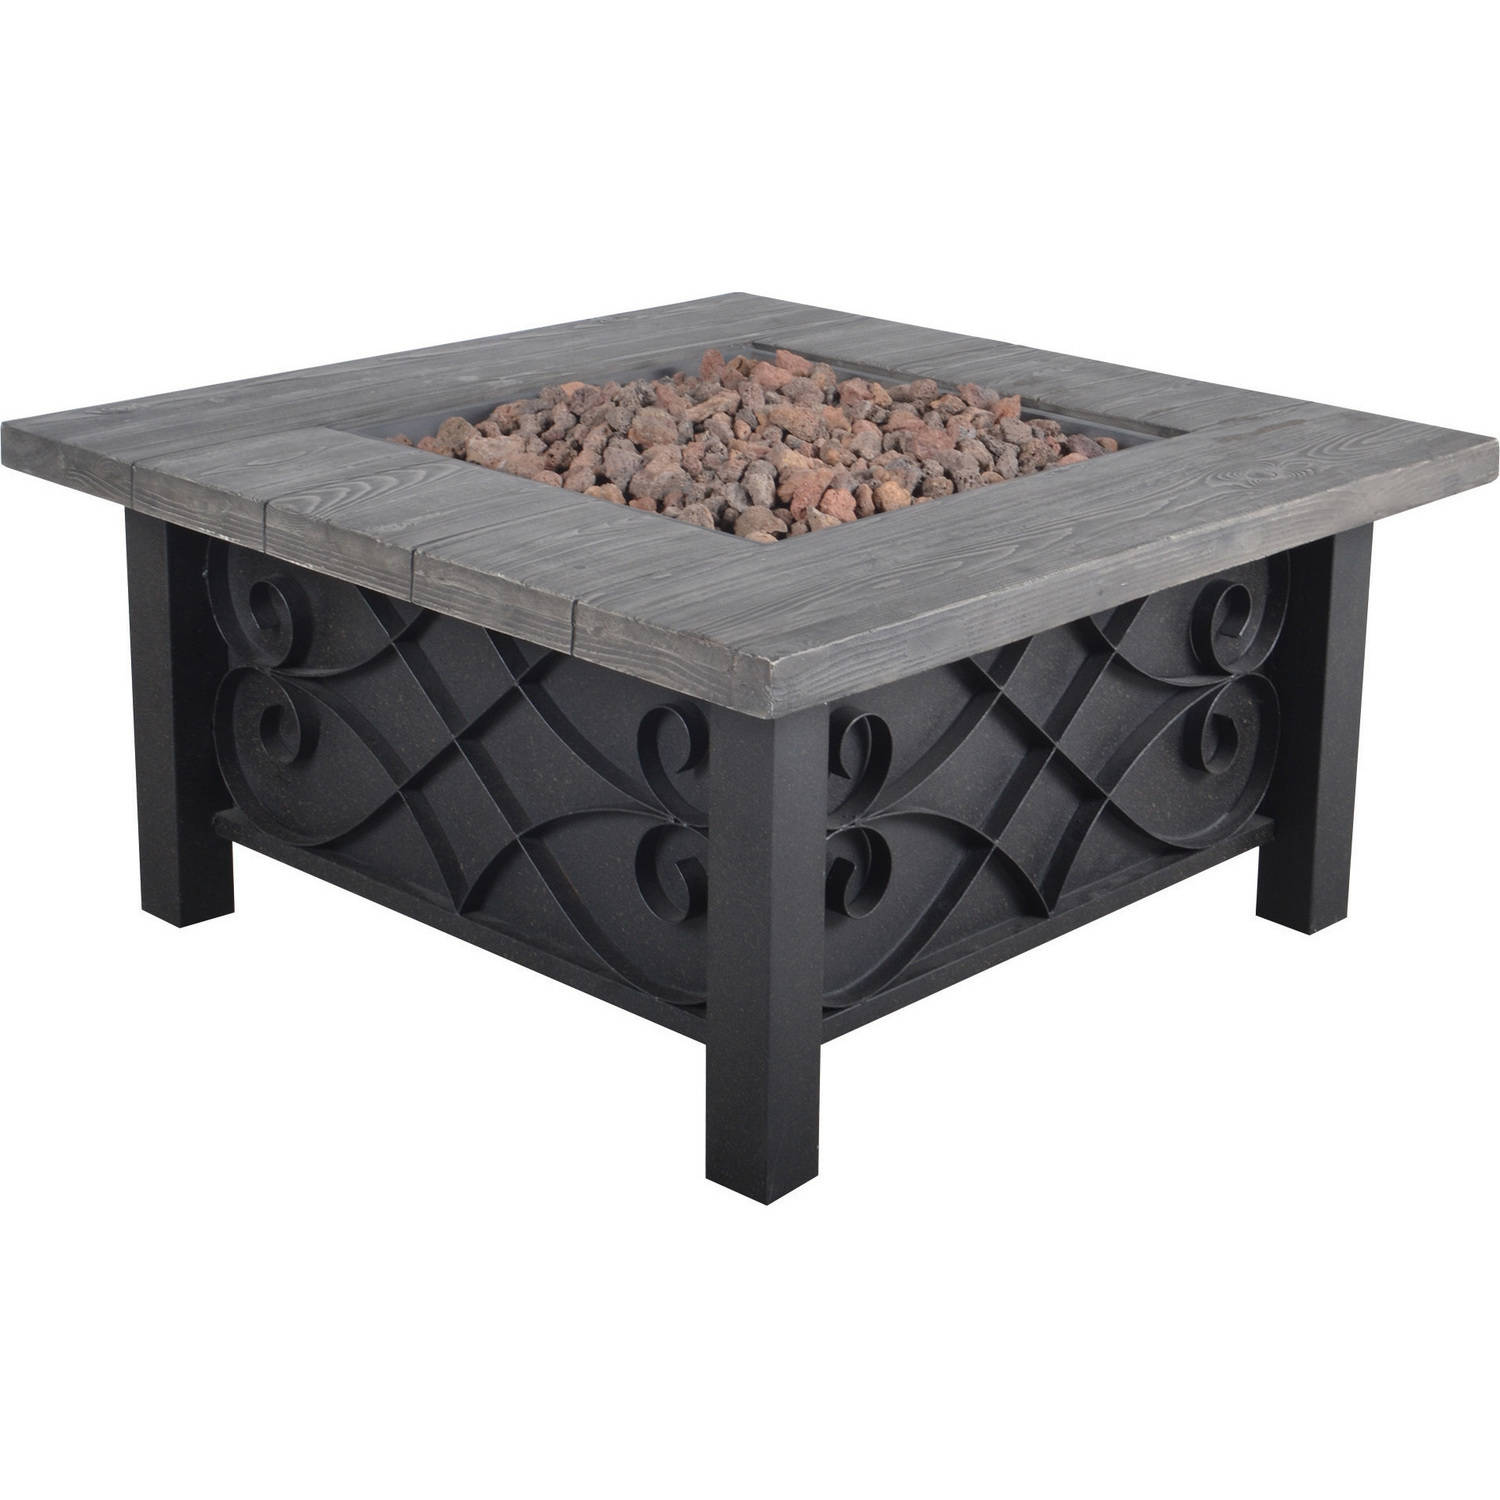 Marbella Gas Fire Table